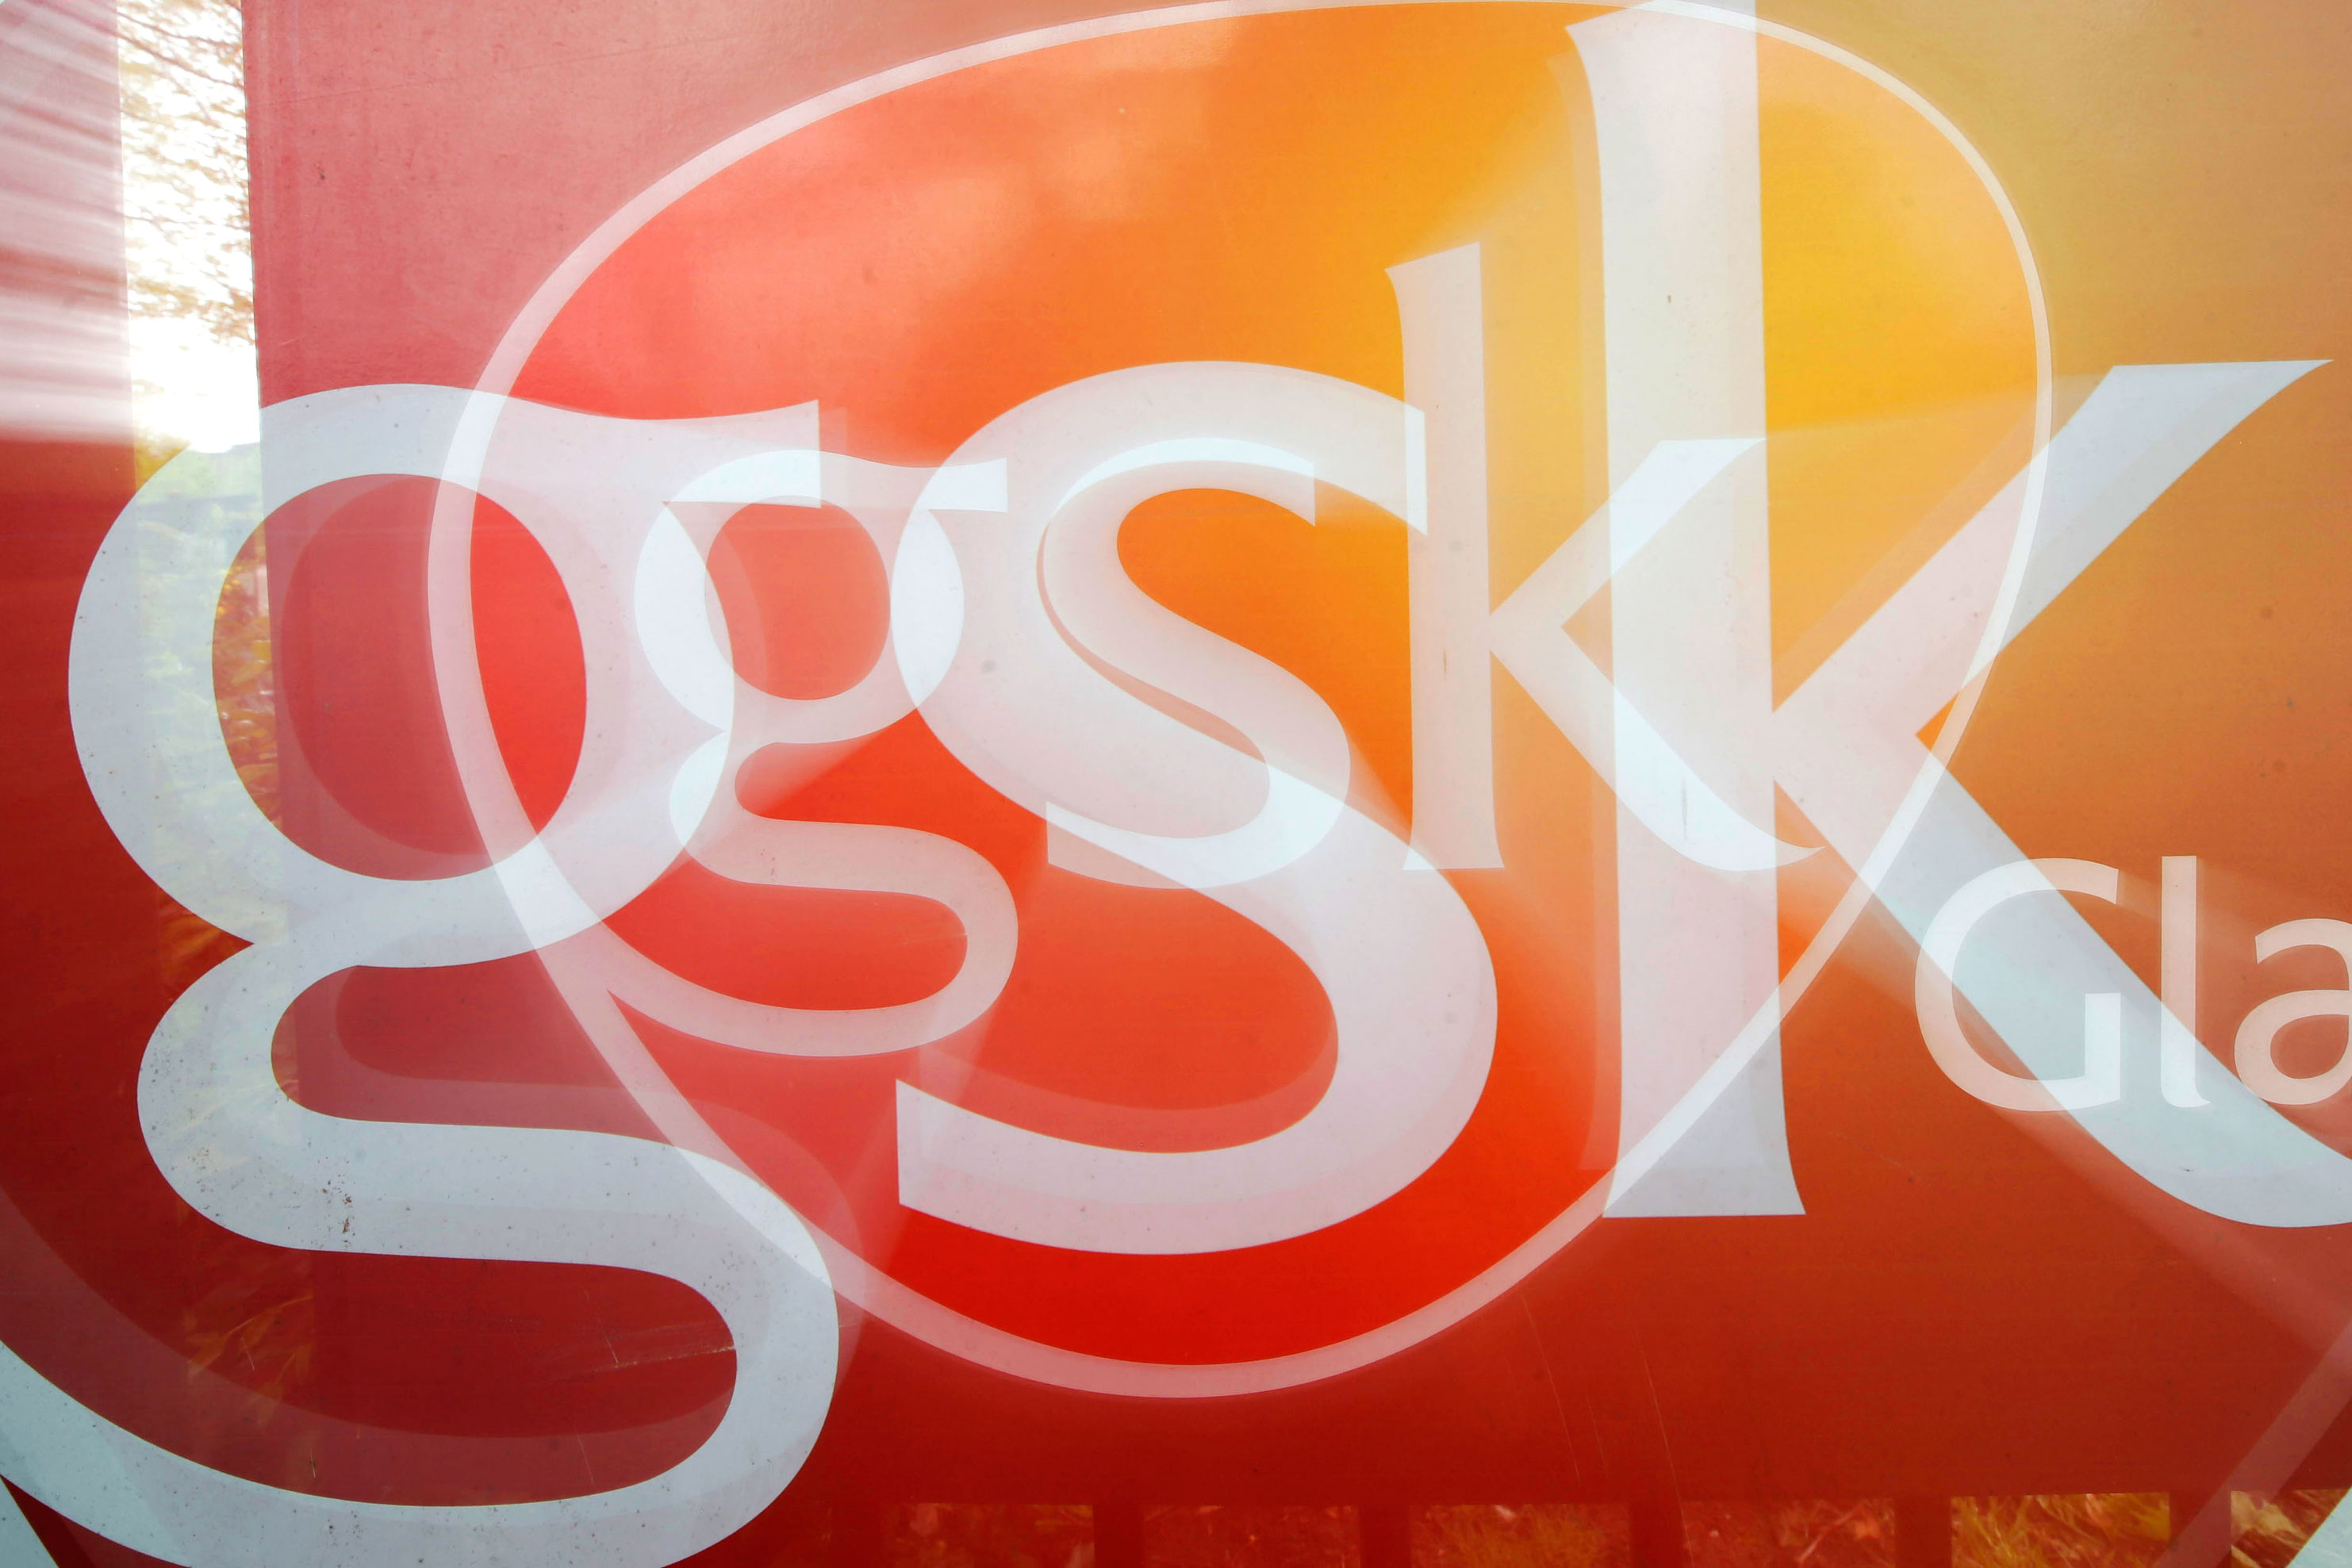 Glaxo CEO Replaced 50 Top Managers in Shakeup to Spur Growth